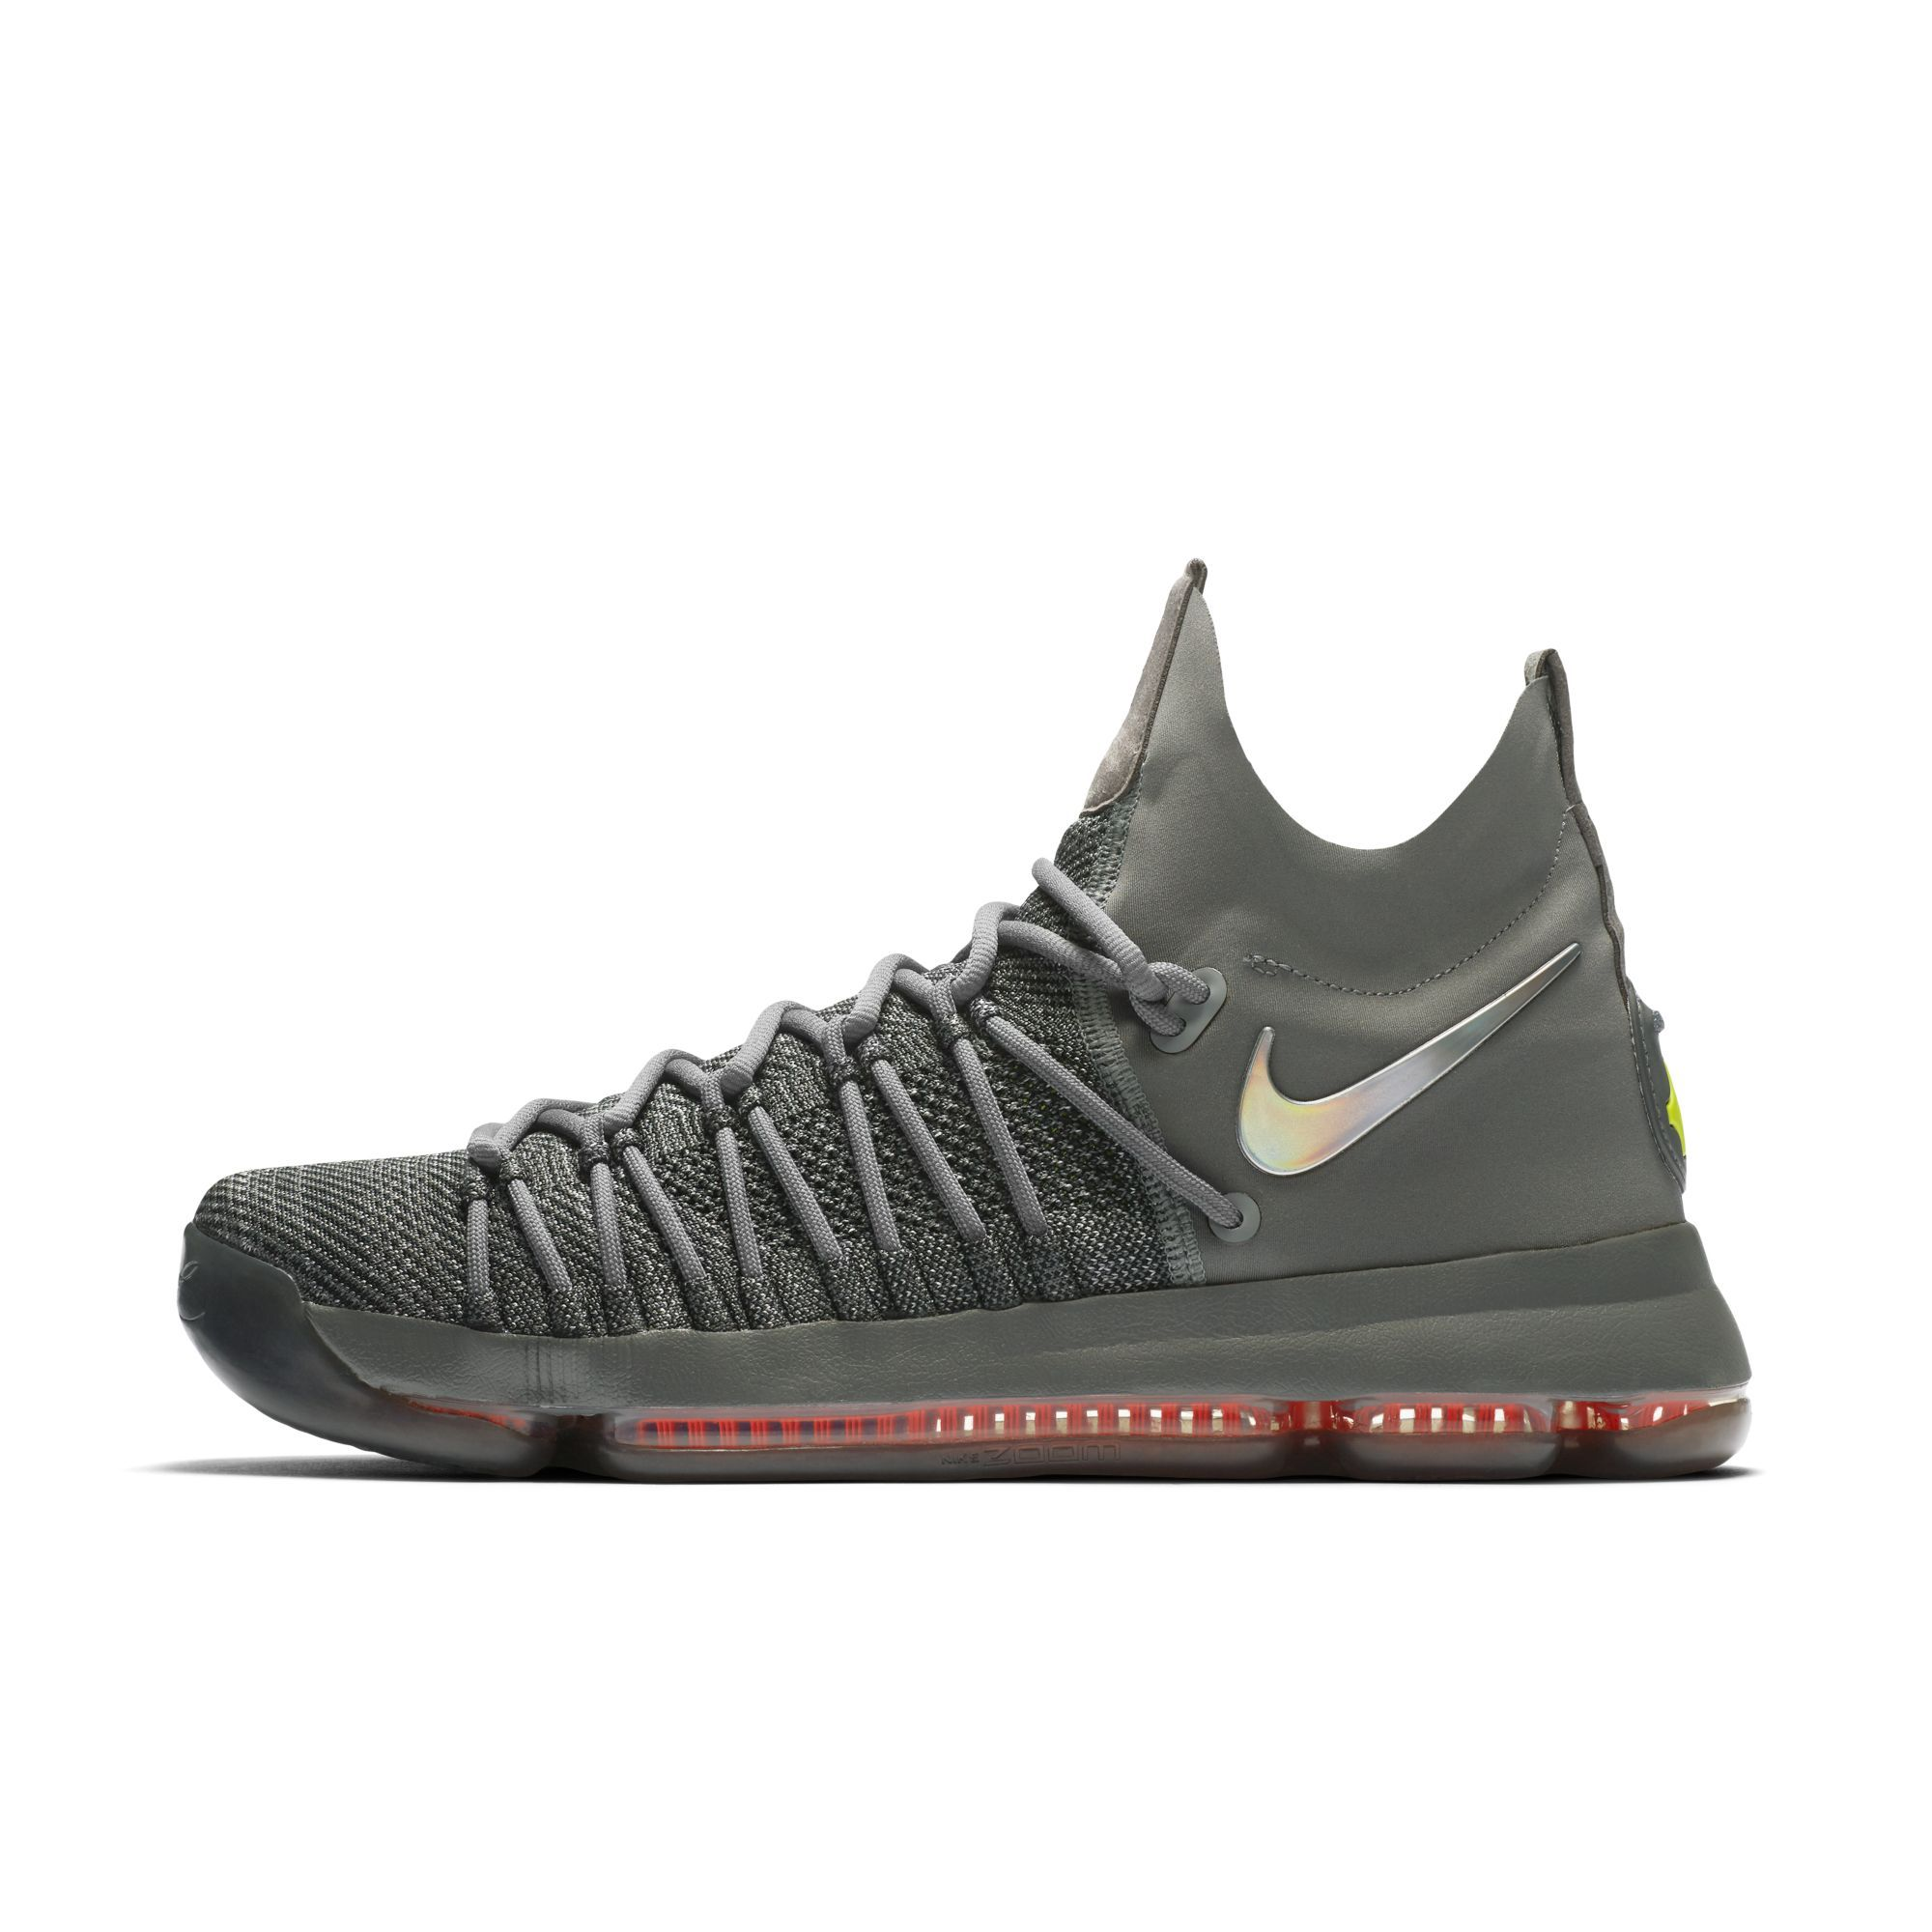 b6278735682 ... wholesale an official look at the nike kd 9 elite weartesters 82543  2ecb0